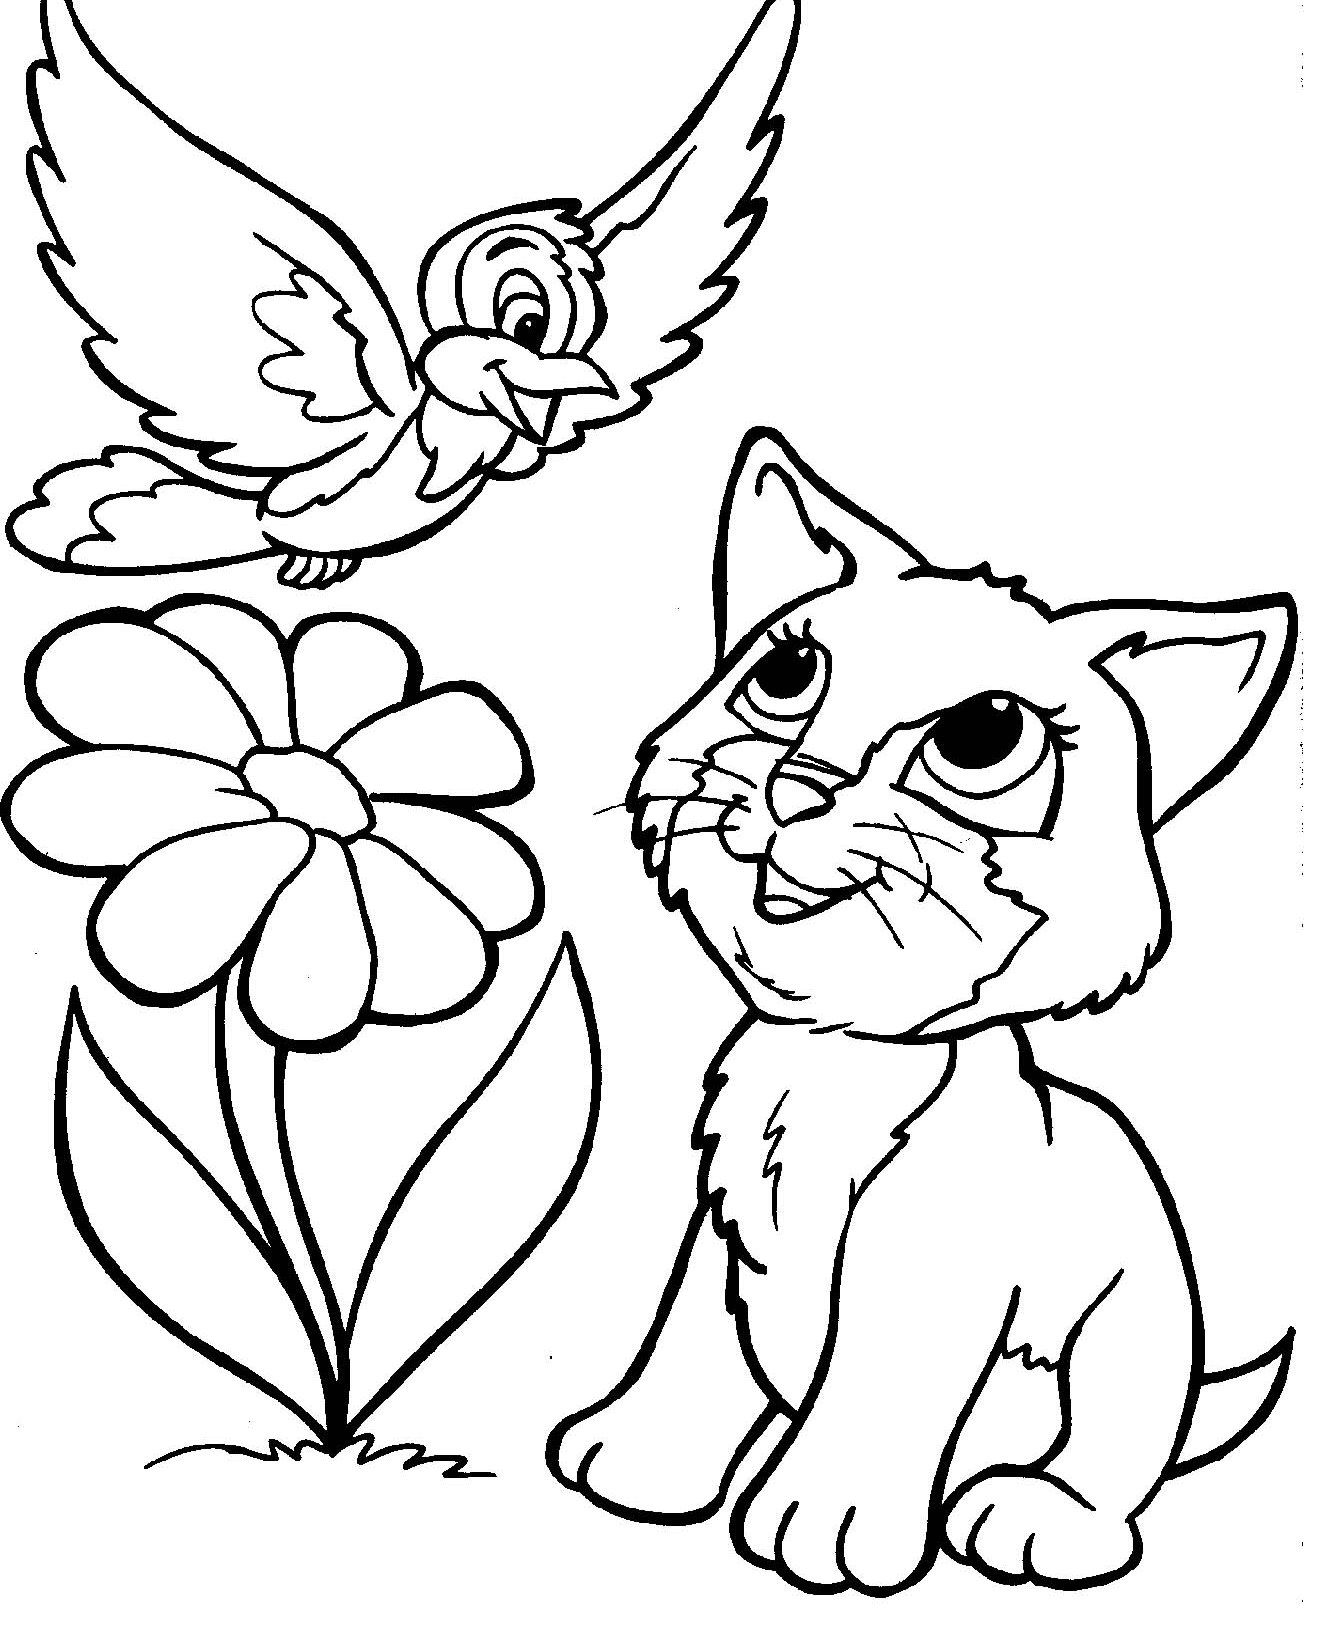 Vogel en kat | Coloring Pages Kids | Pinterest | Stamps, Digi stamps ...